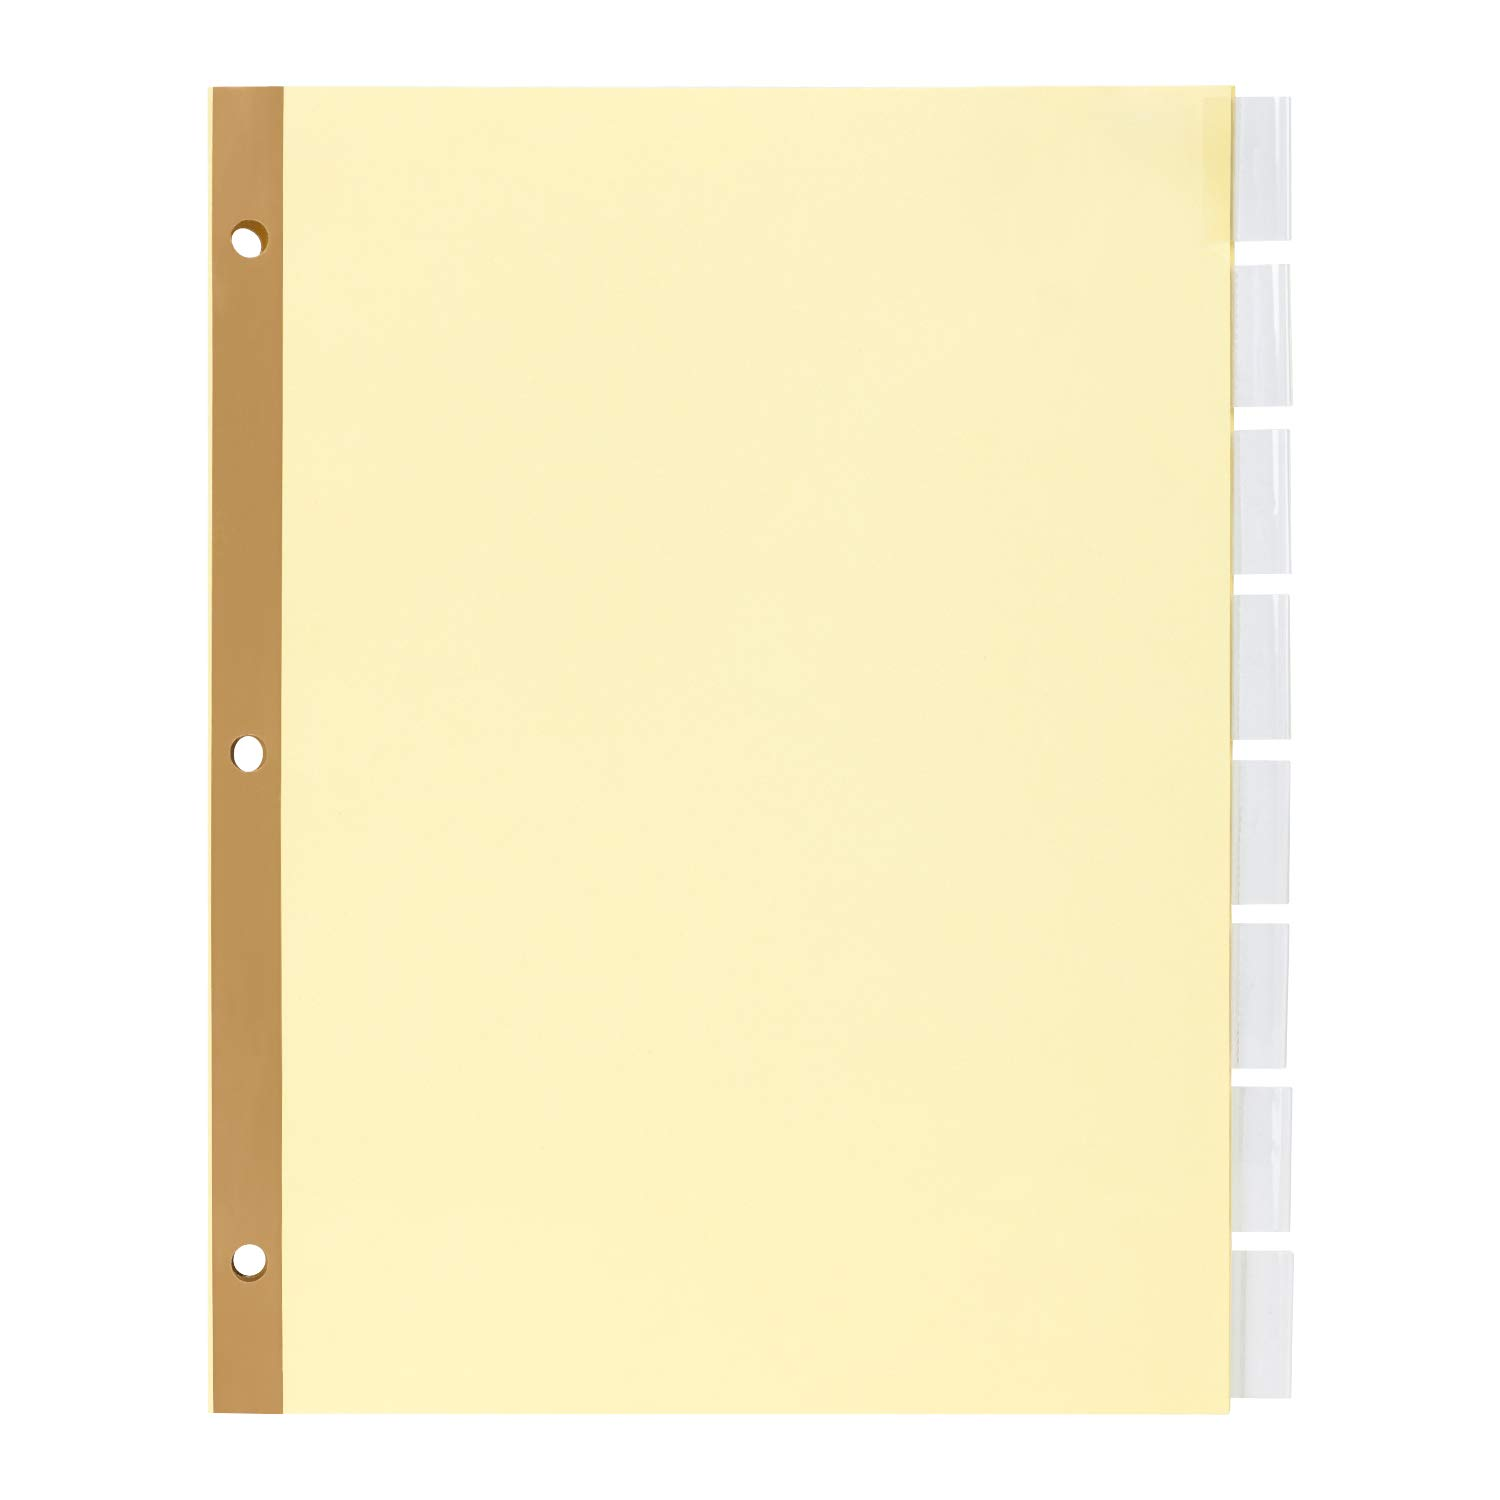 Amazon Basics 8-Tab Paper Binder Dividers , Insertable Clear Tabs, 24 Sets